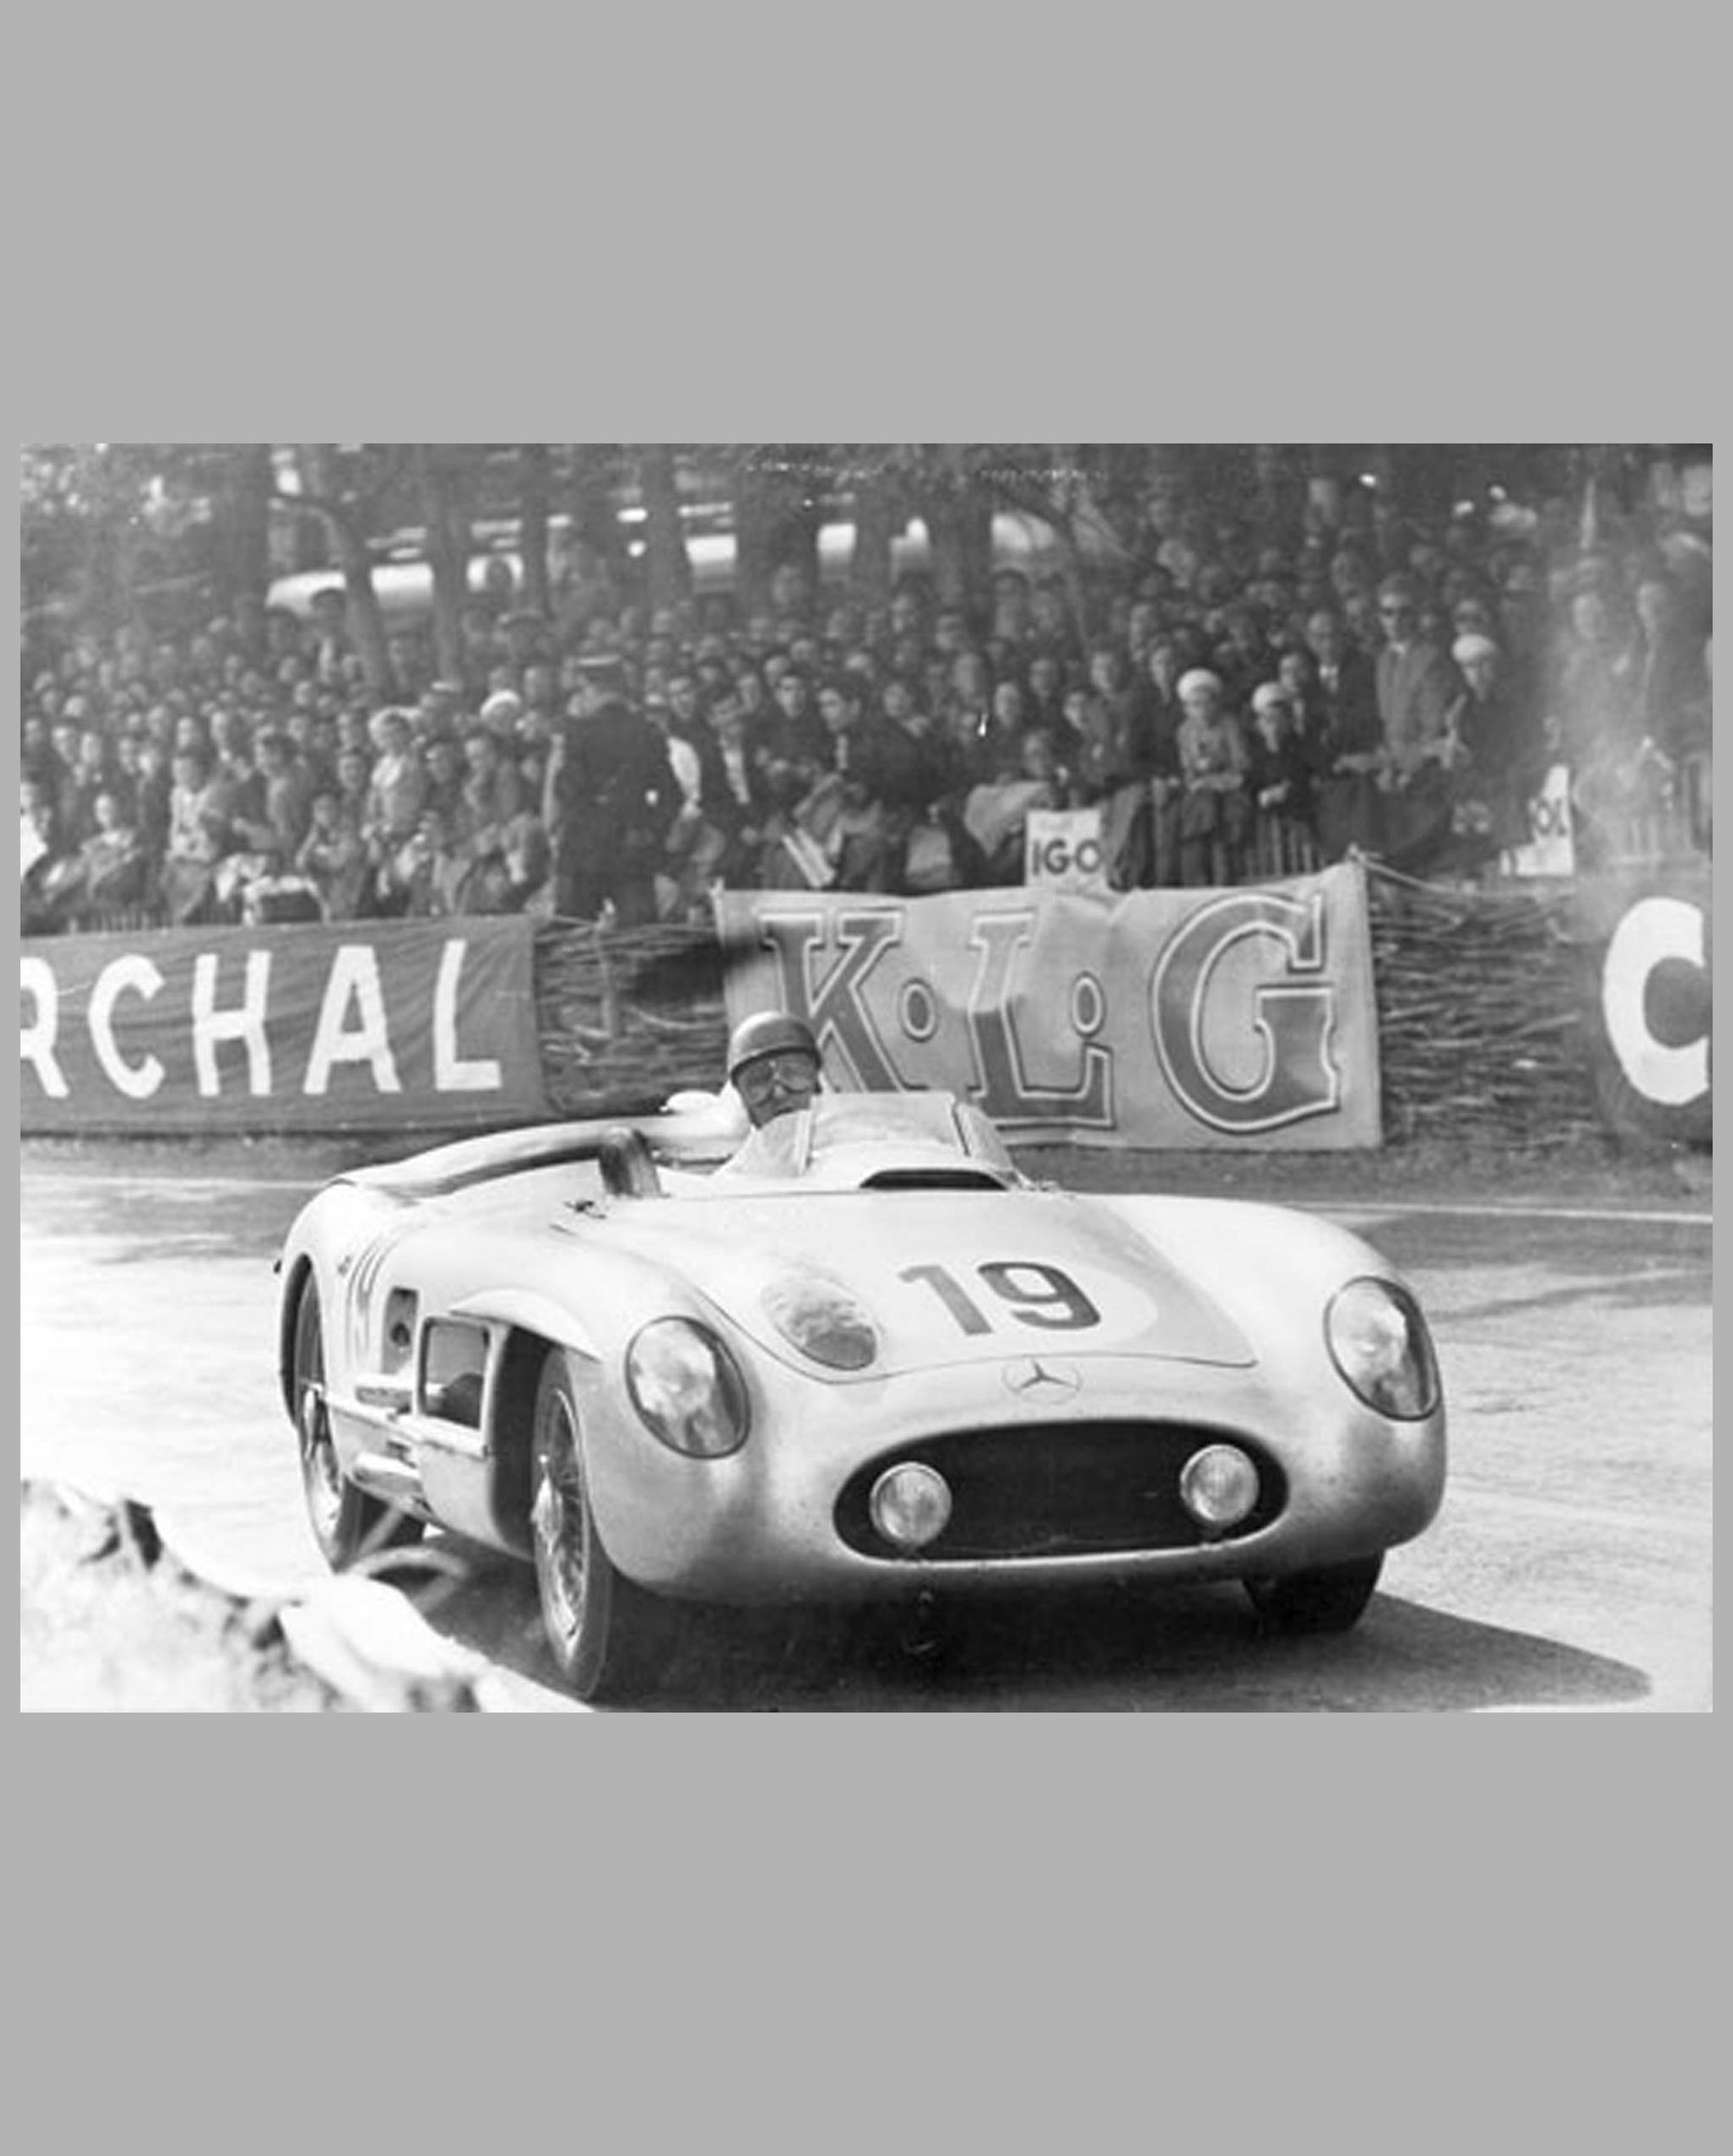 Fangio's Mercedes 300 SLR, 1955 Le Mans photo